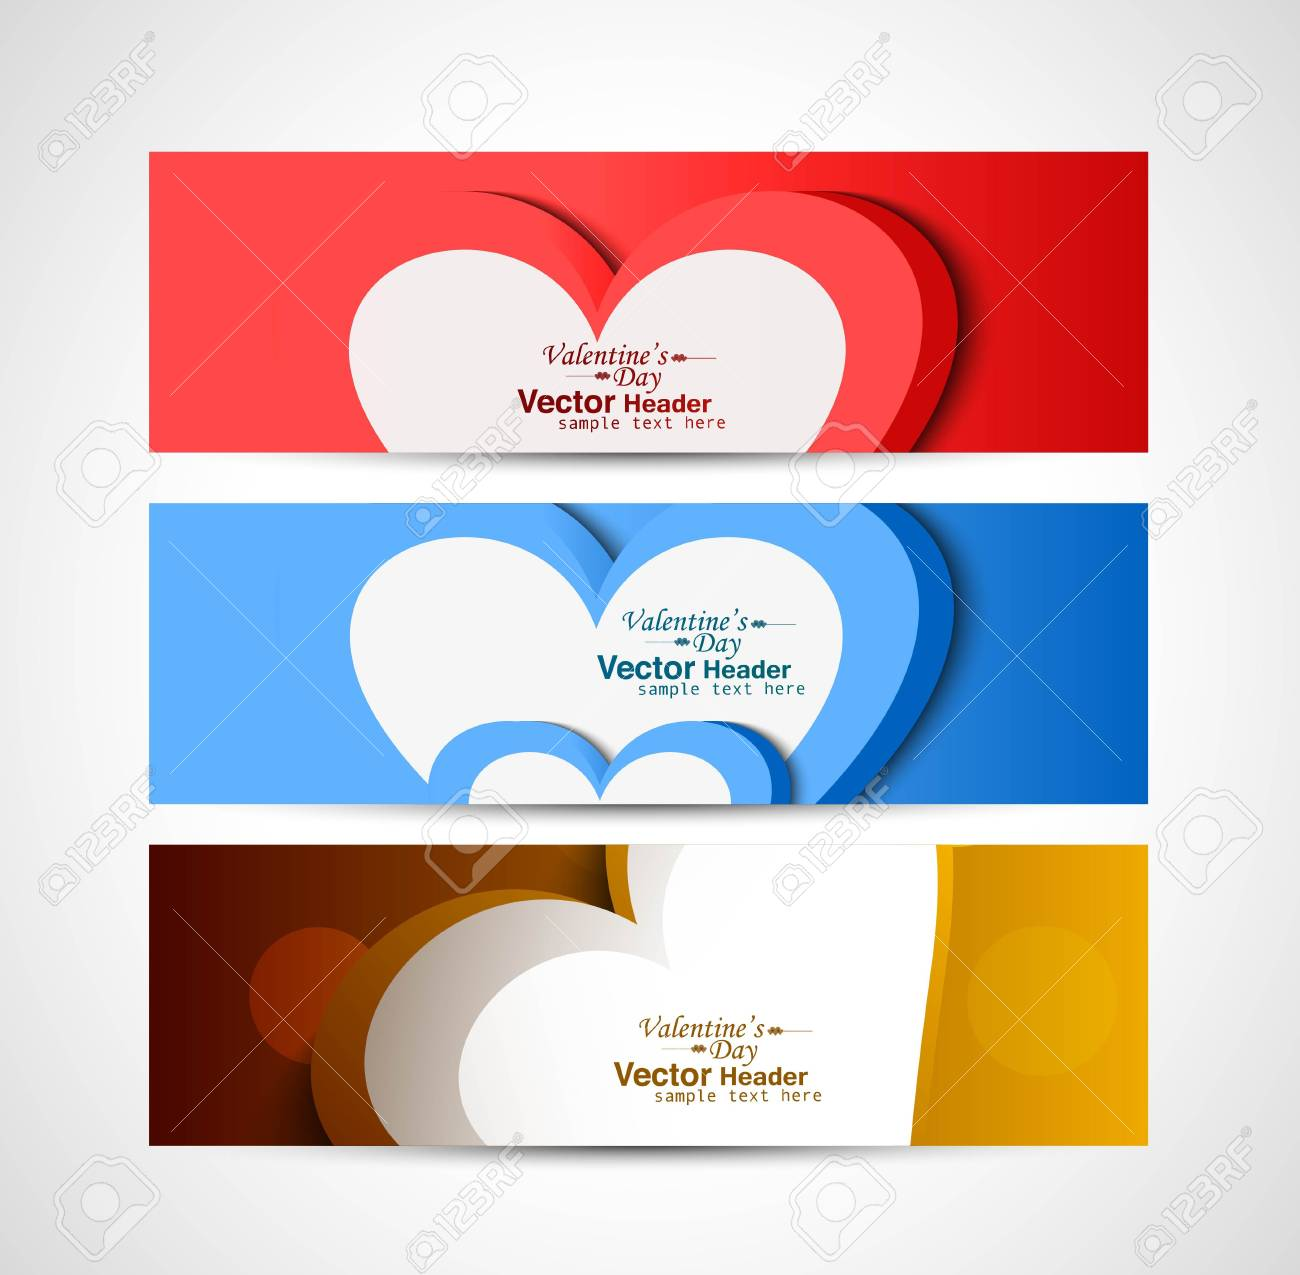 Three colorful heart Valentine's Day header set vector background Stock Vector - 17679556